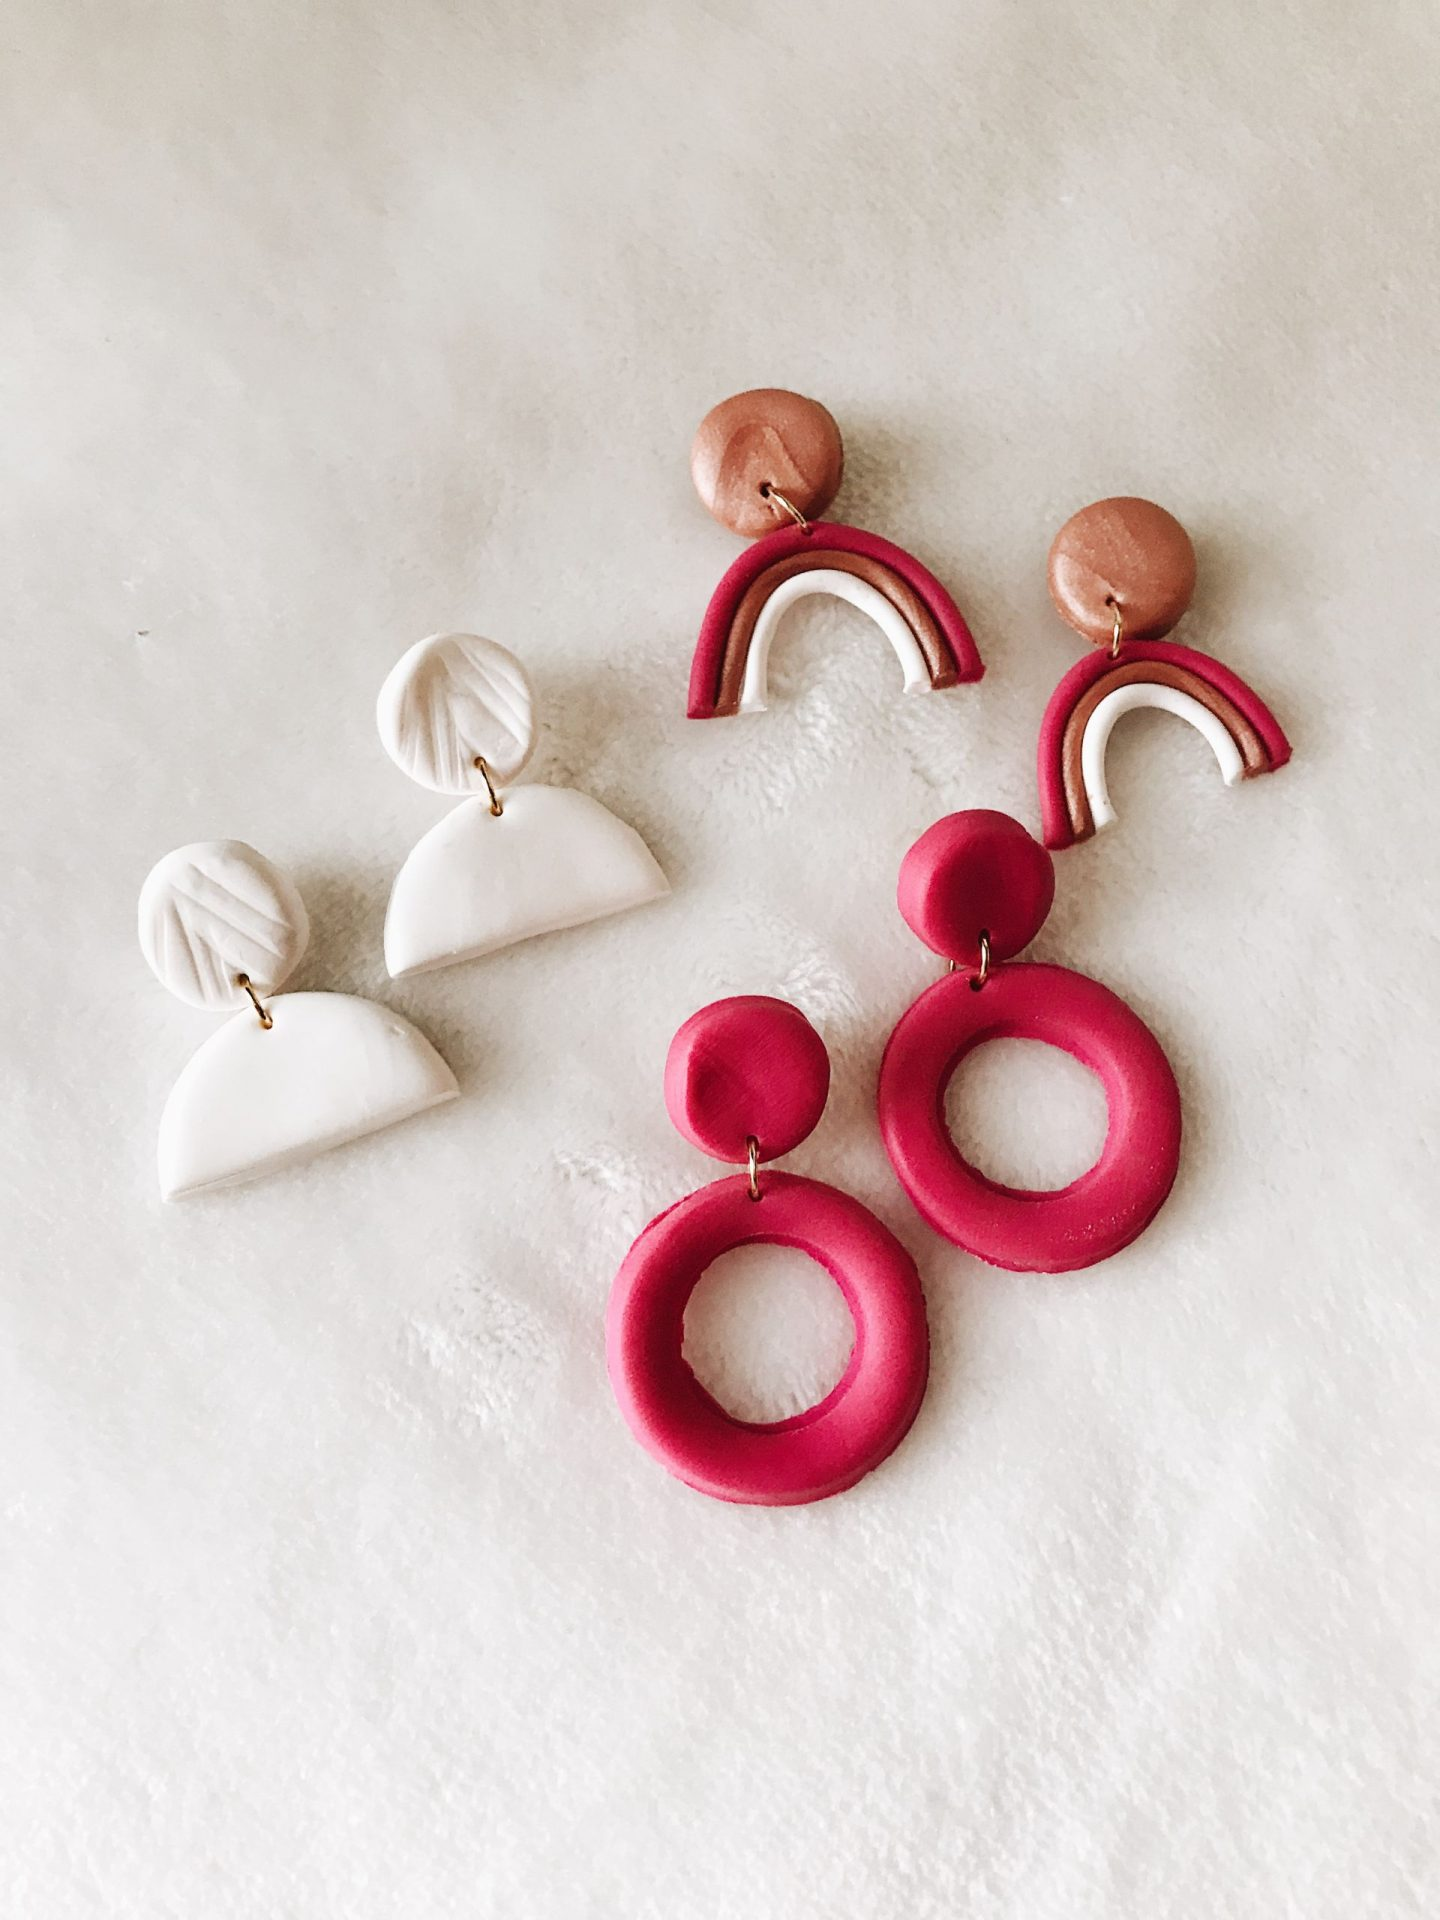 DIY Clay Earrings: Easy and Affordable